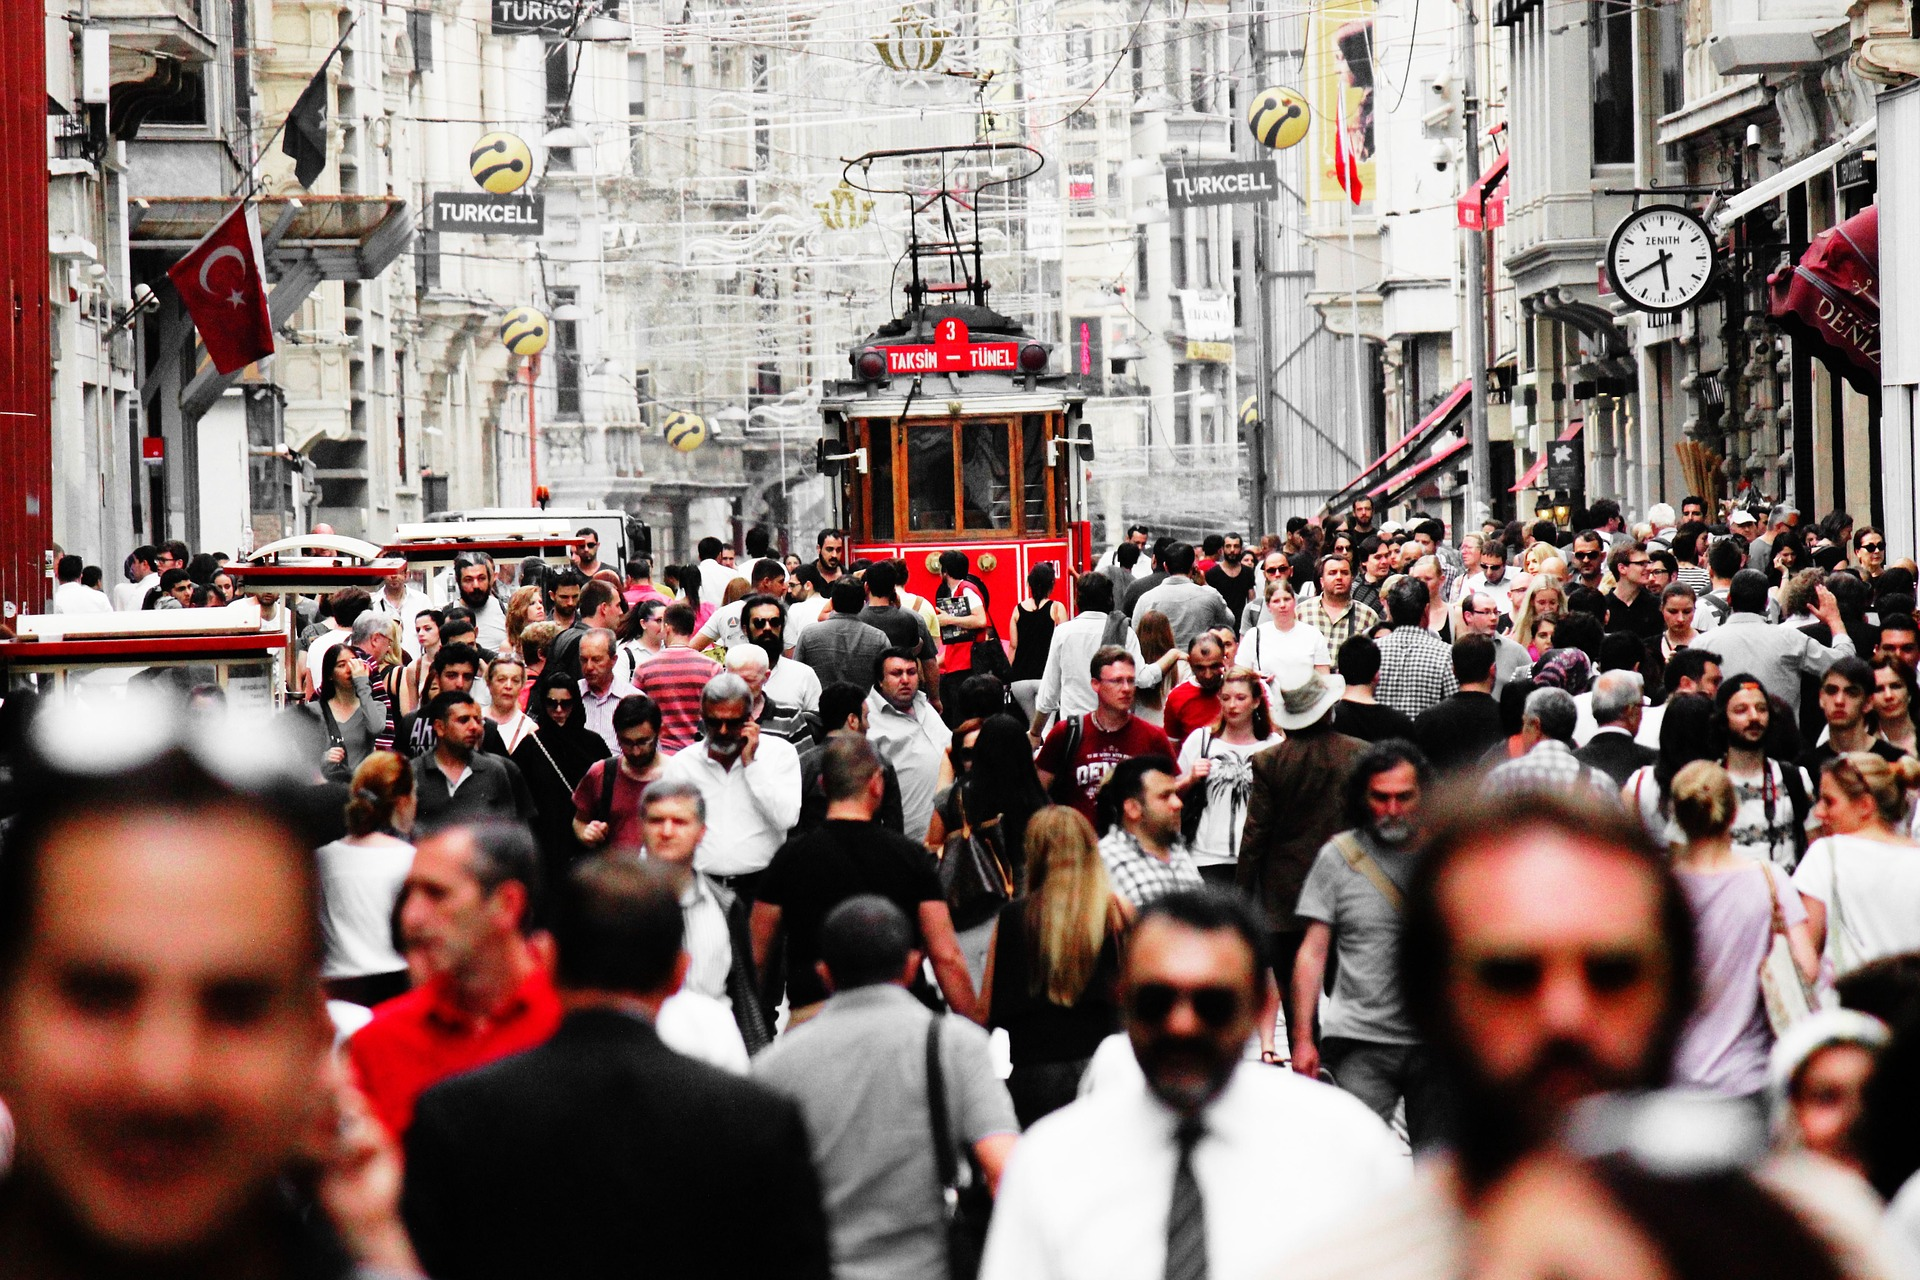 crowdy street in Istanbul